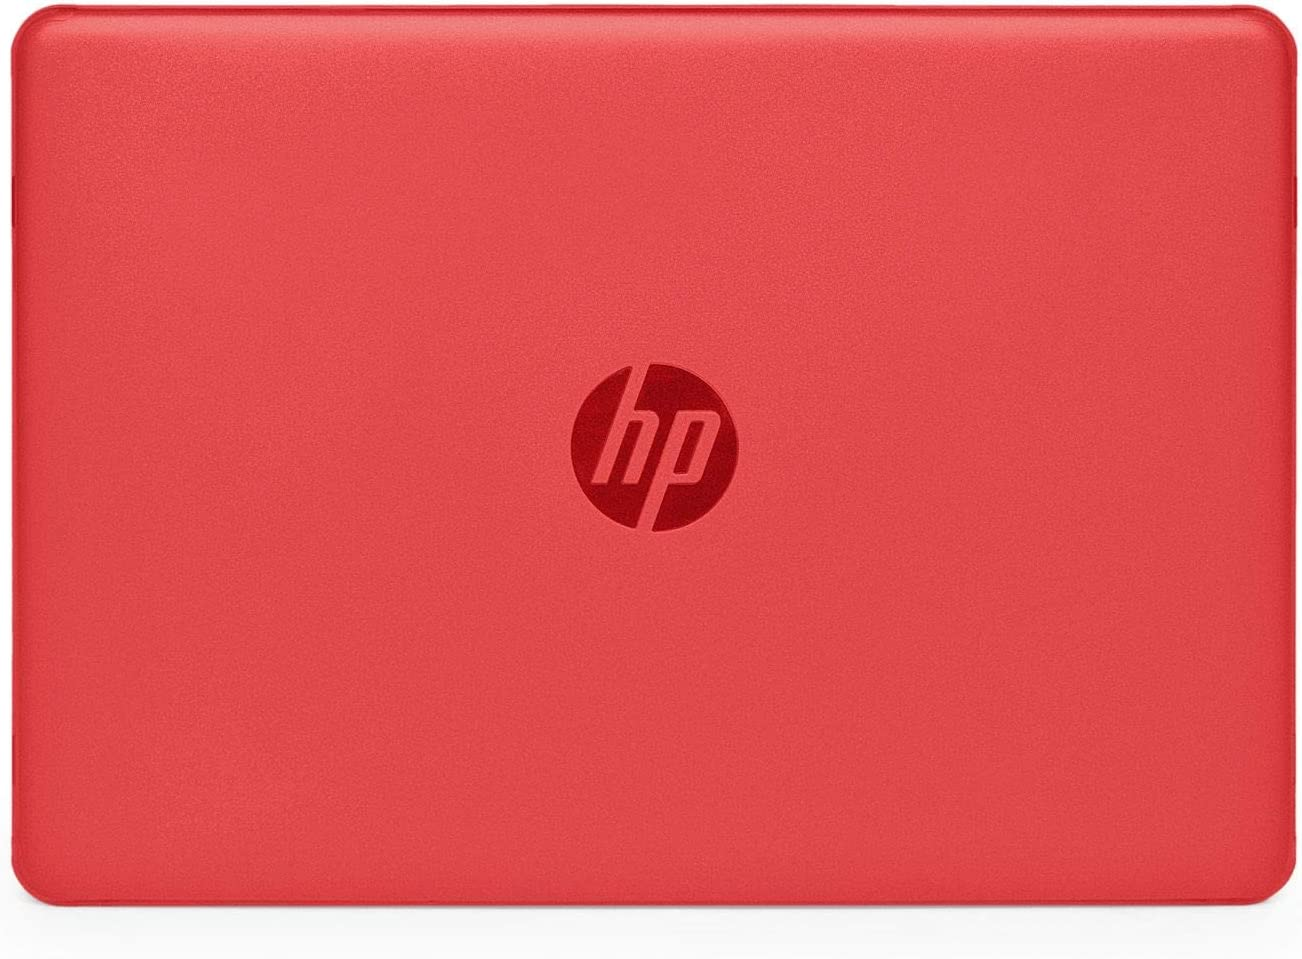 mCover Hard Shell Case for 2020 Max 60% OFF 14-DQxxxx Pavilion Series Special sale item HP 14